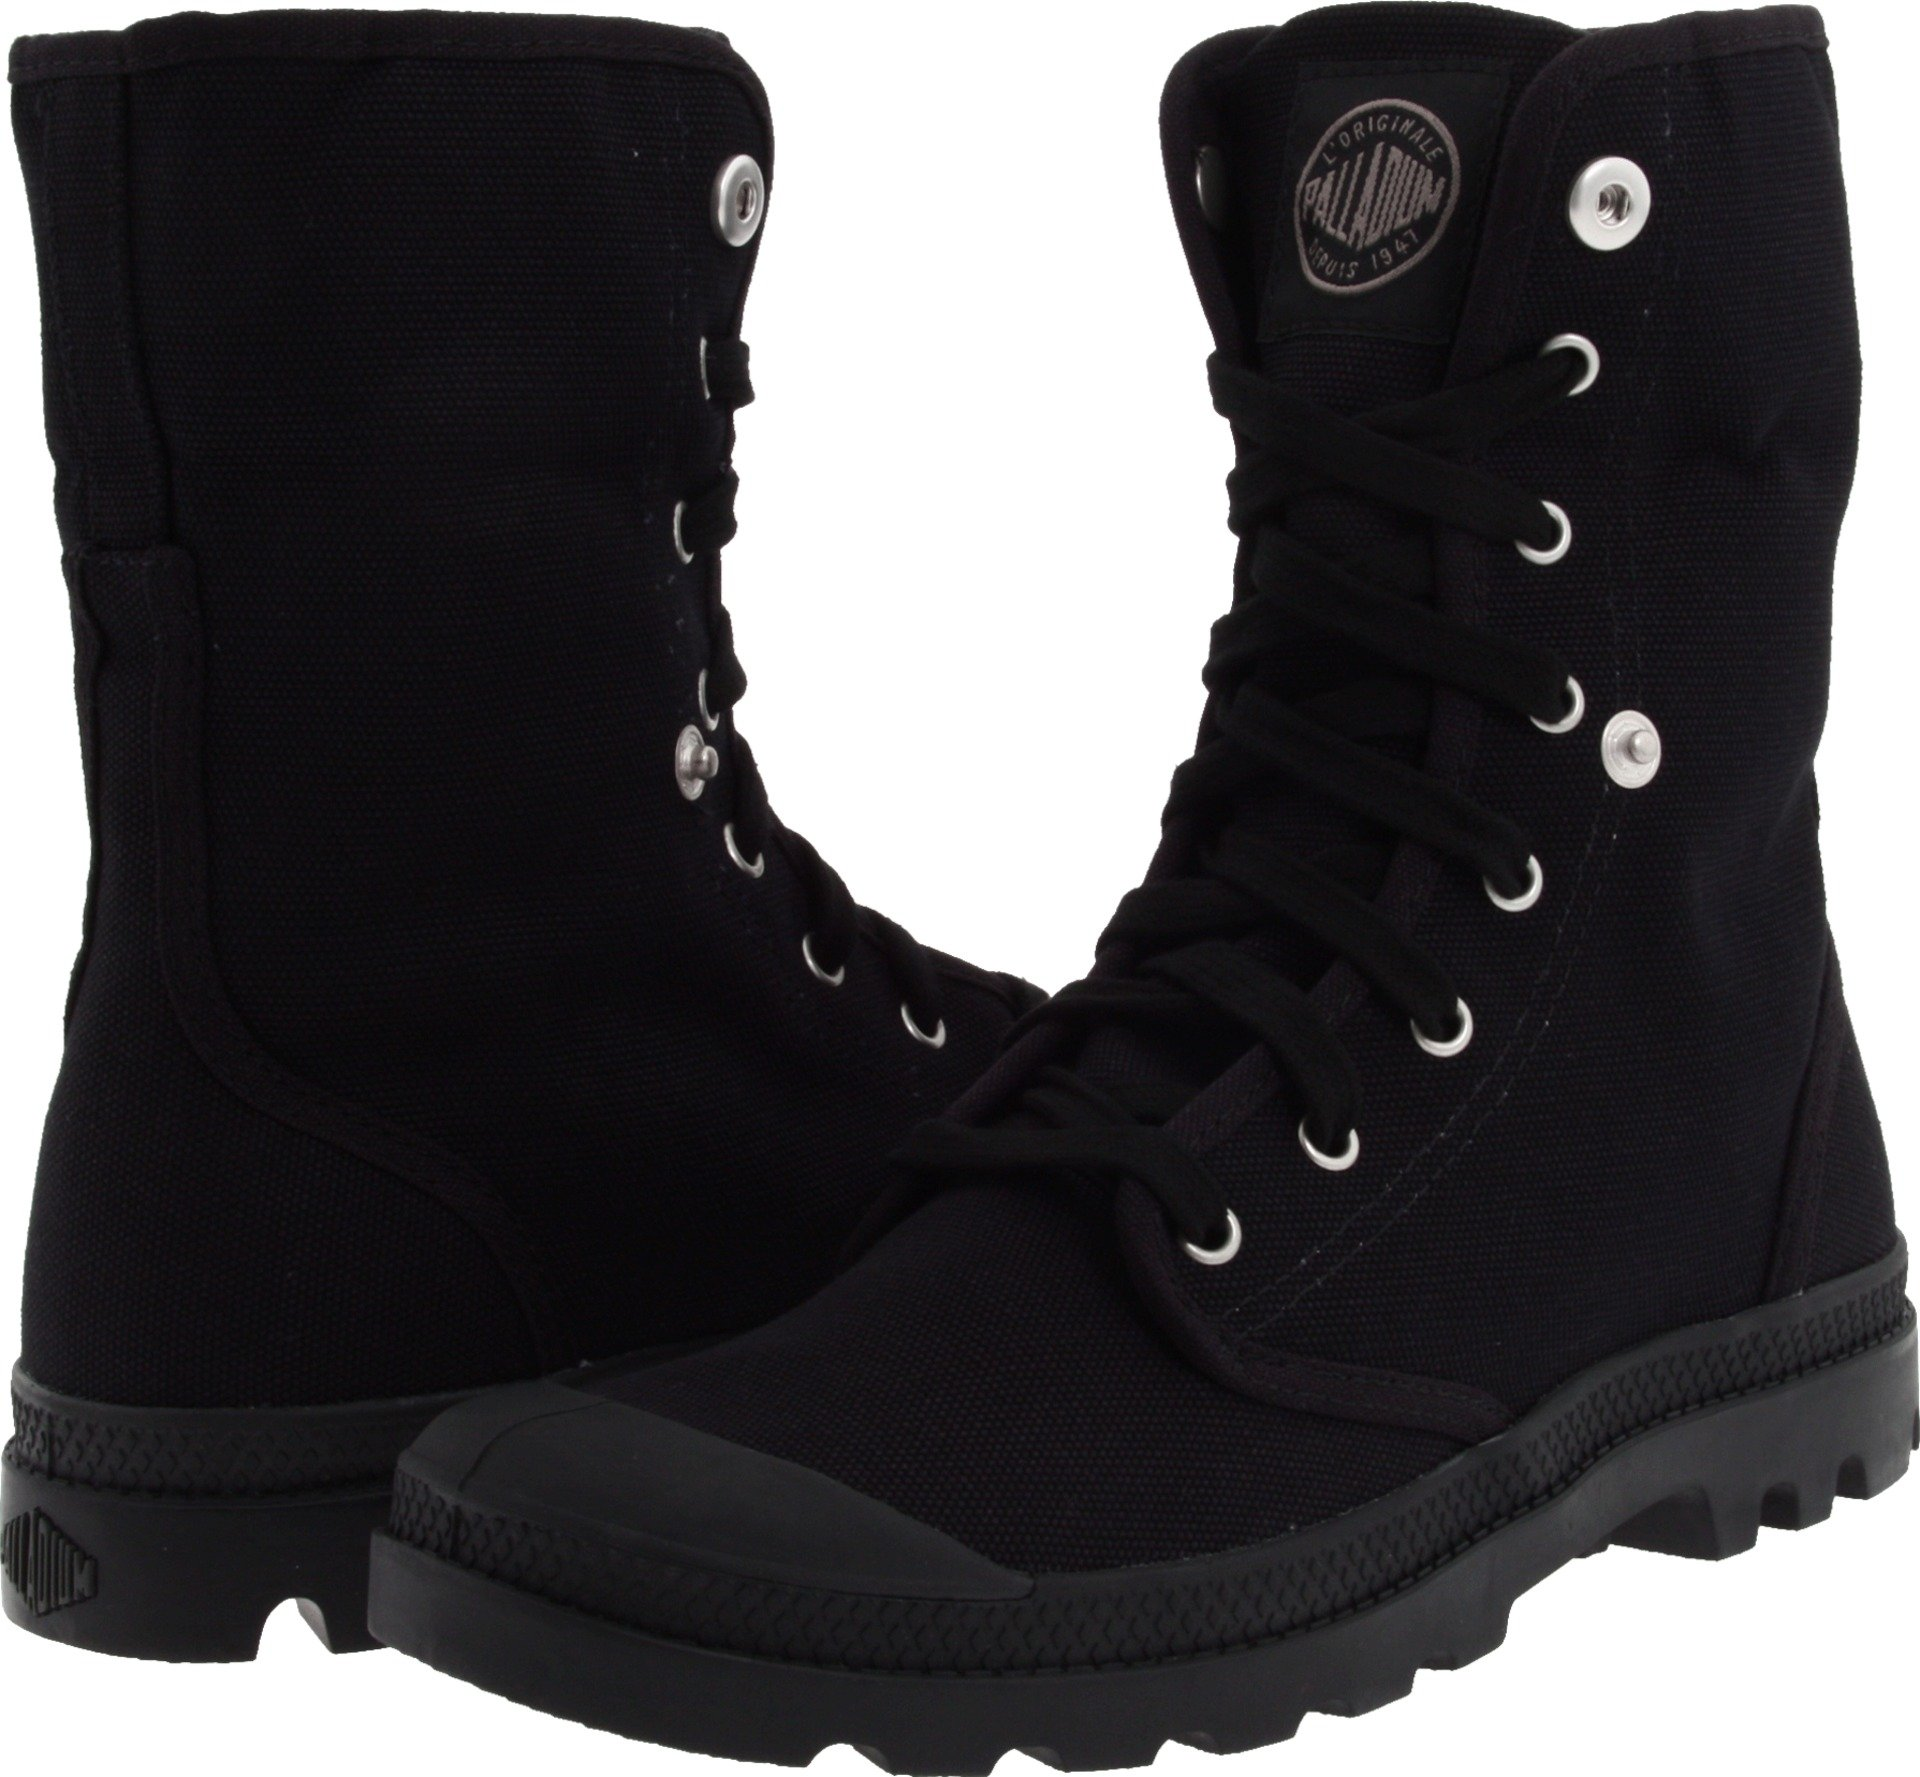 Palladium Boots Mens Baggy Canvas Boots , Black/Black, 11.5